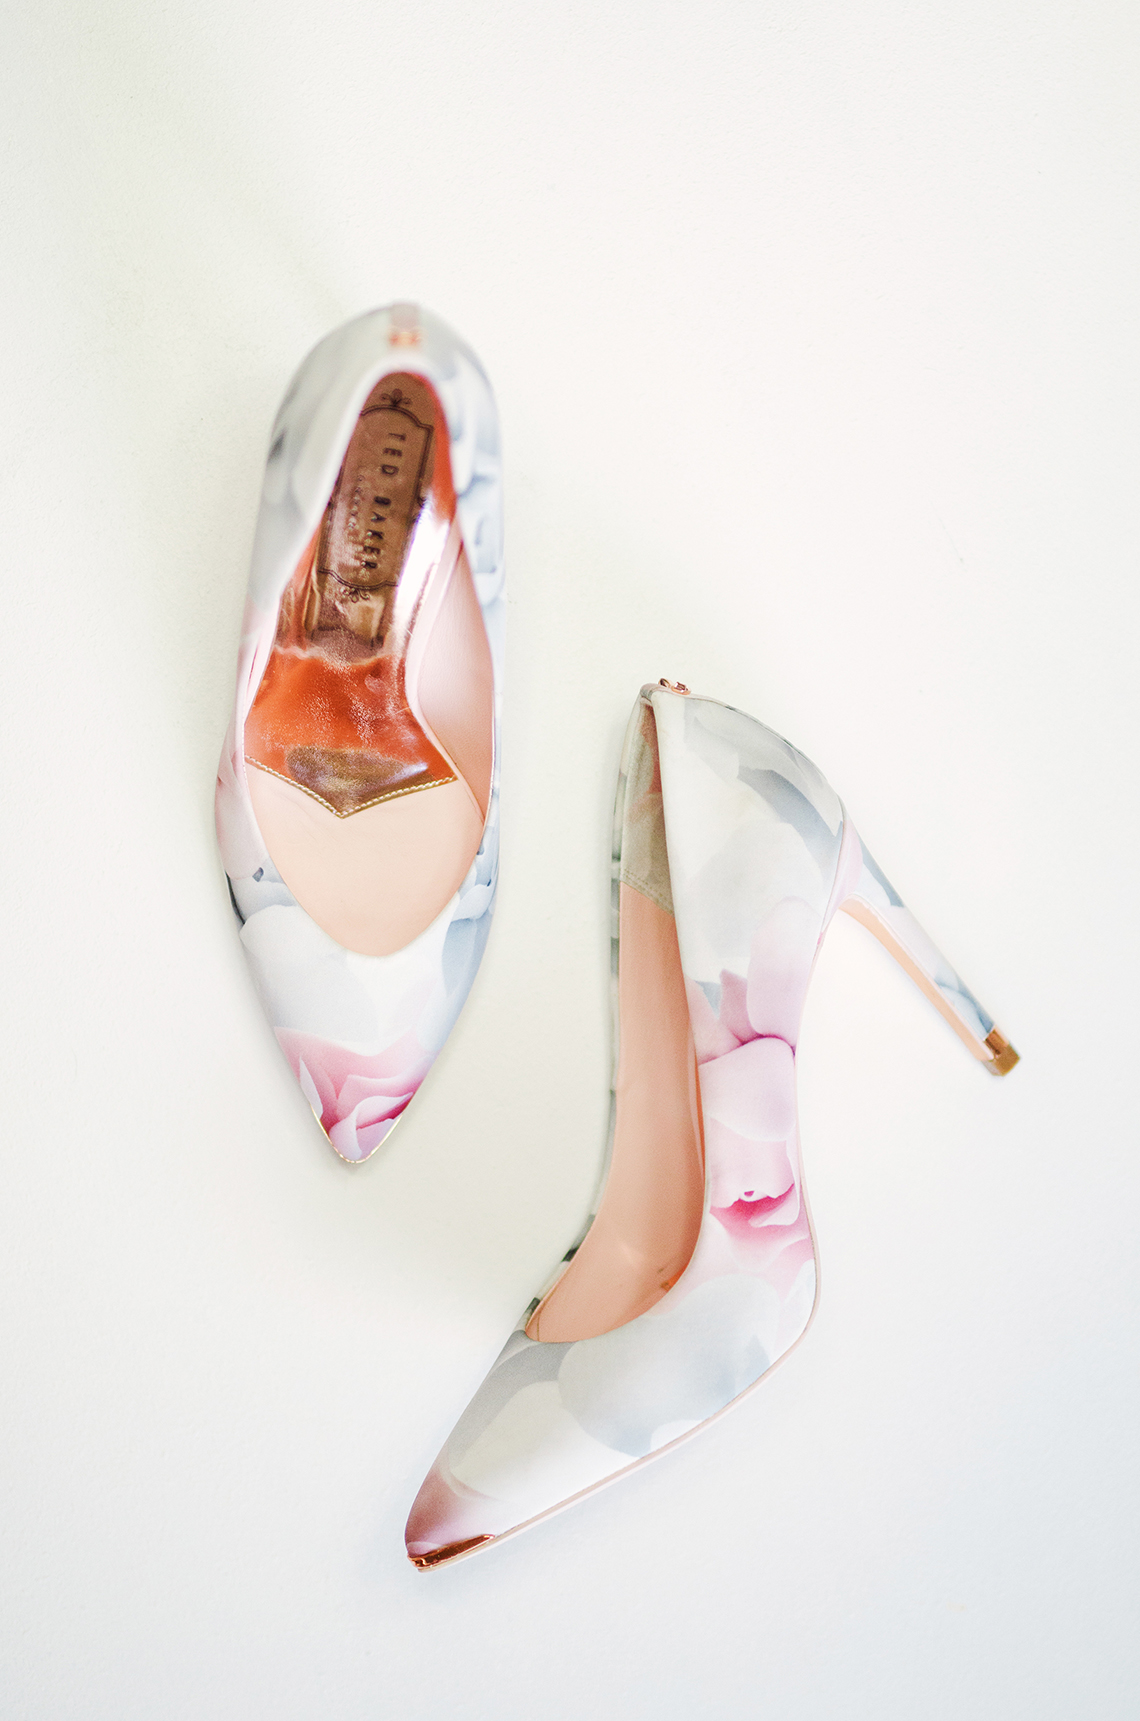 049a5fe029e Sweet Feet with Ted Baker - BLOVED Blog